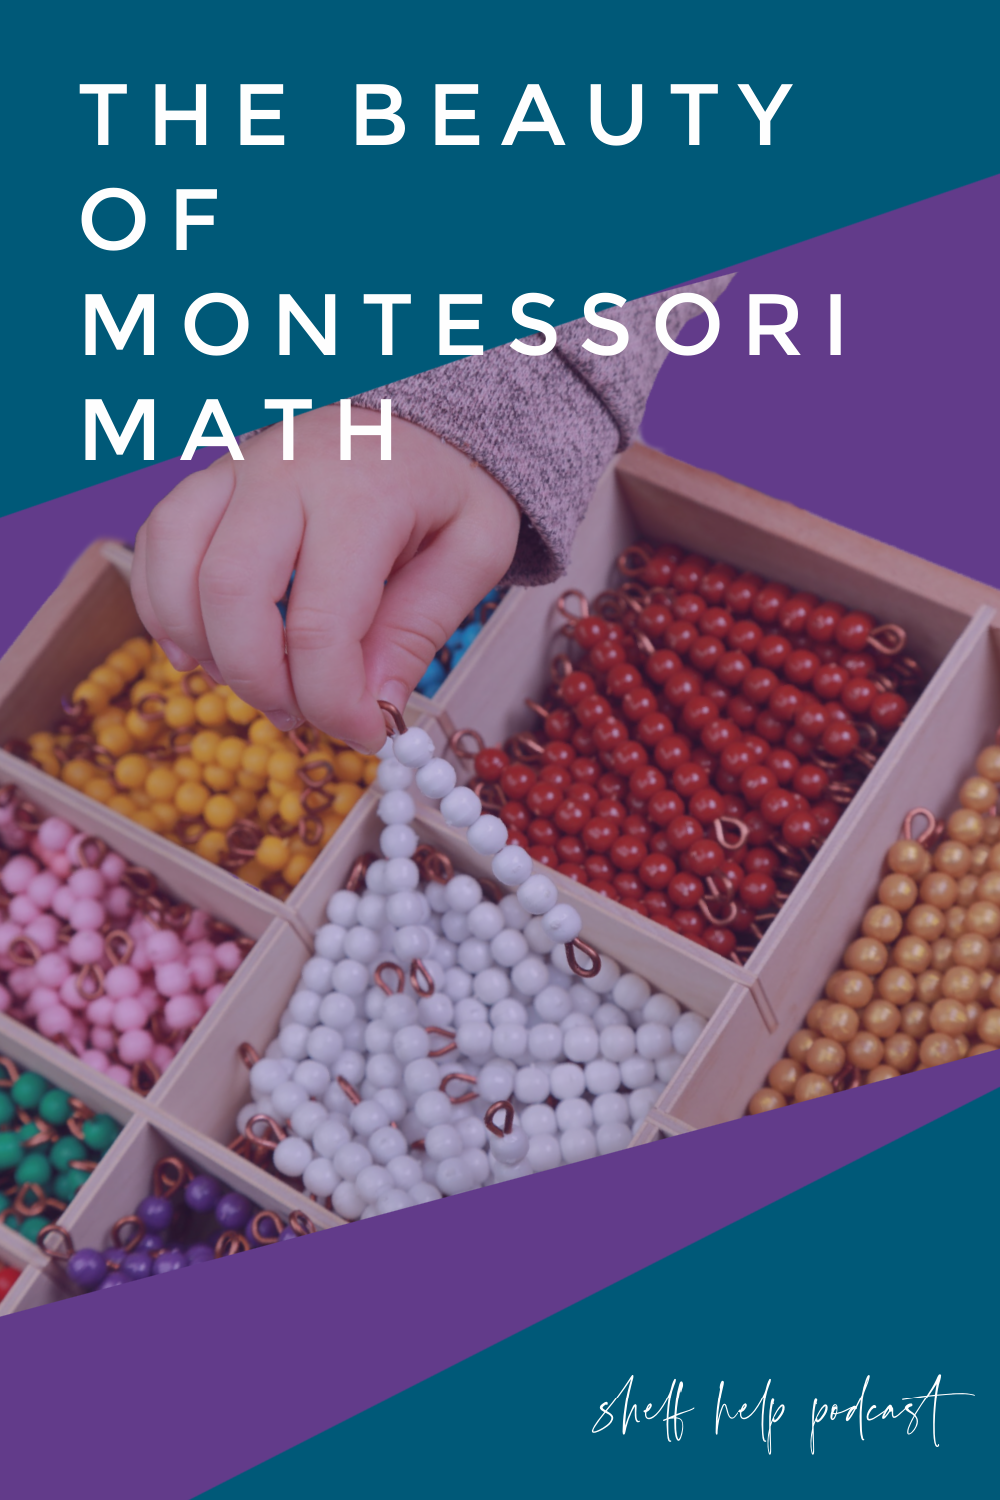 In this Montessori parenting podcast we talk about Montessori math curriculum. We explain what it is, why it works, and how to support at home.